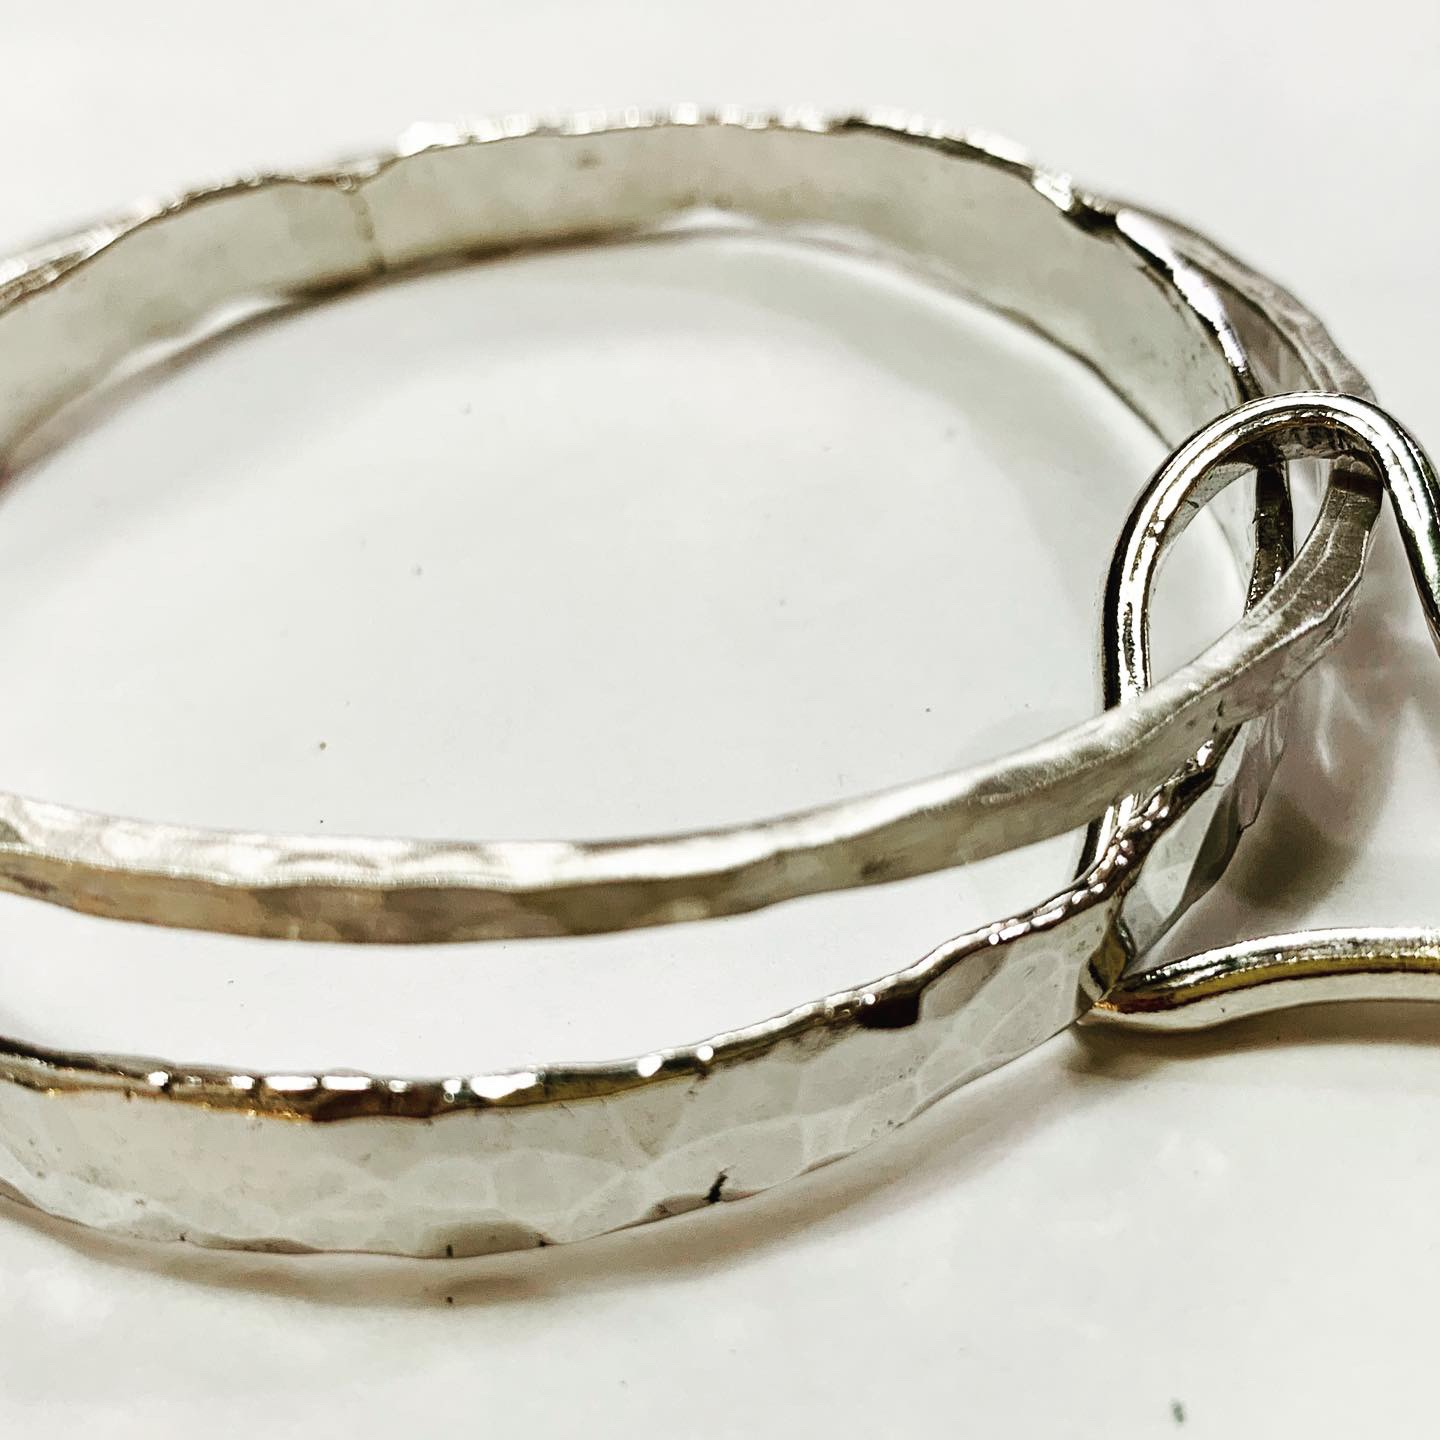 Colette Hazewood Contemporary Jewellery Silver Heart bangles